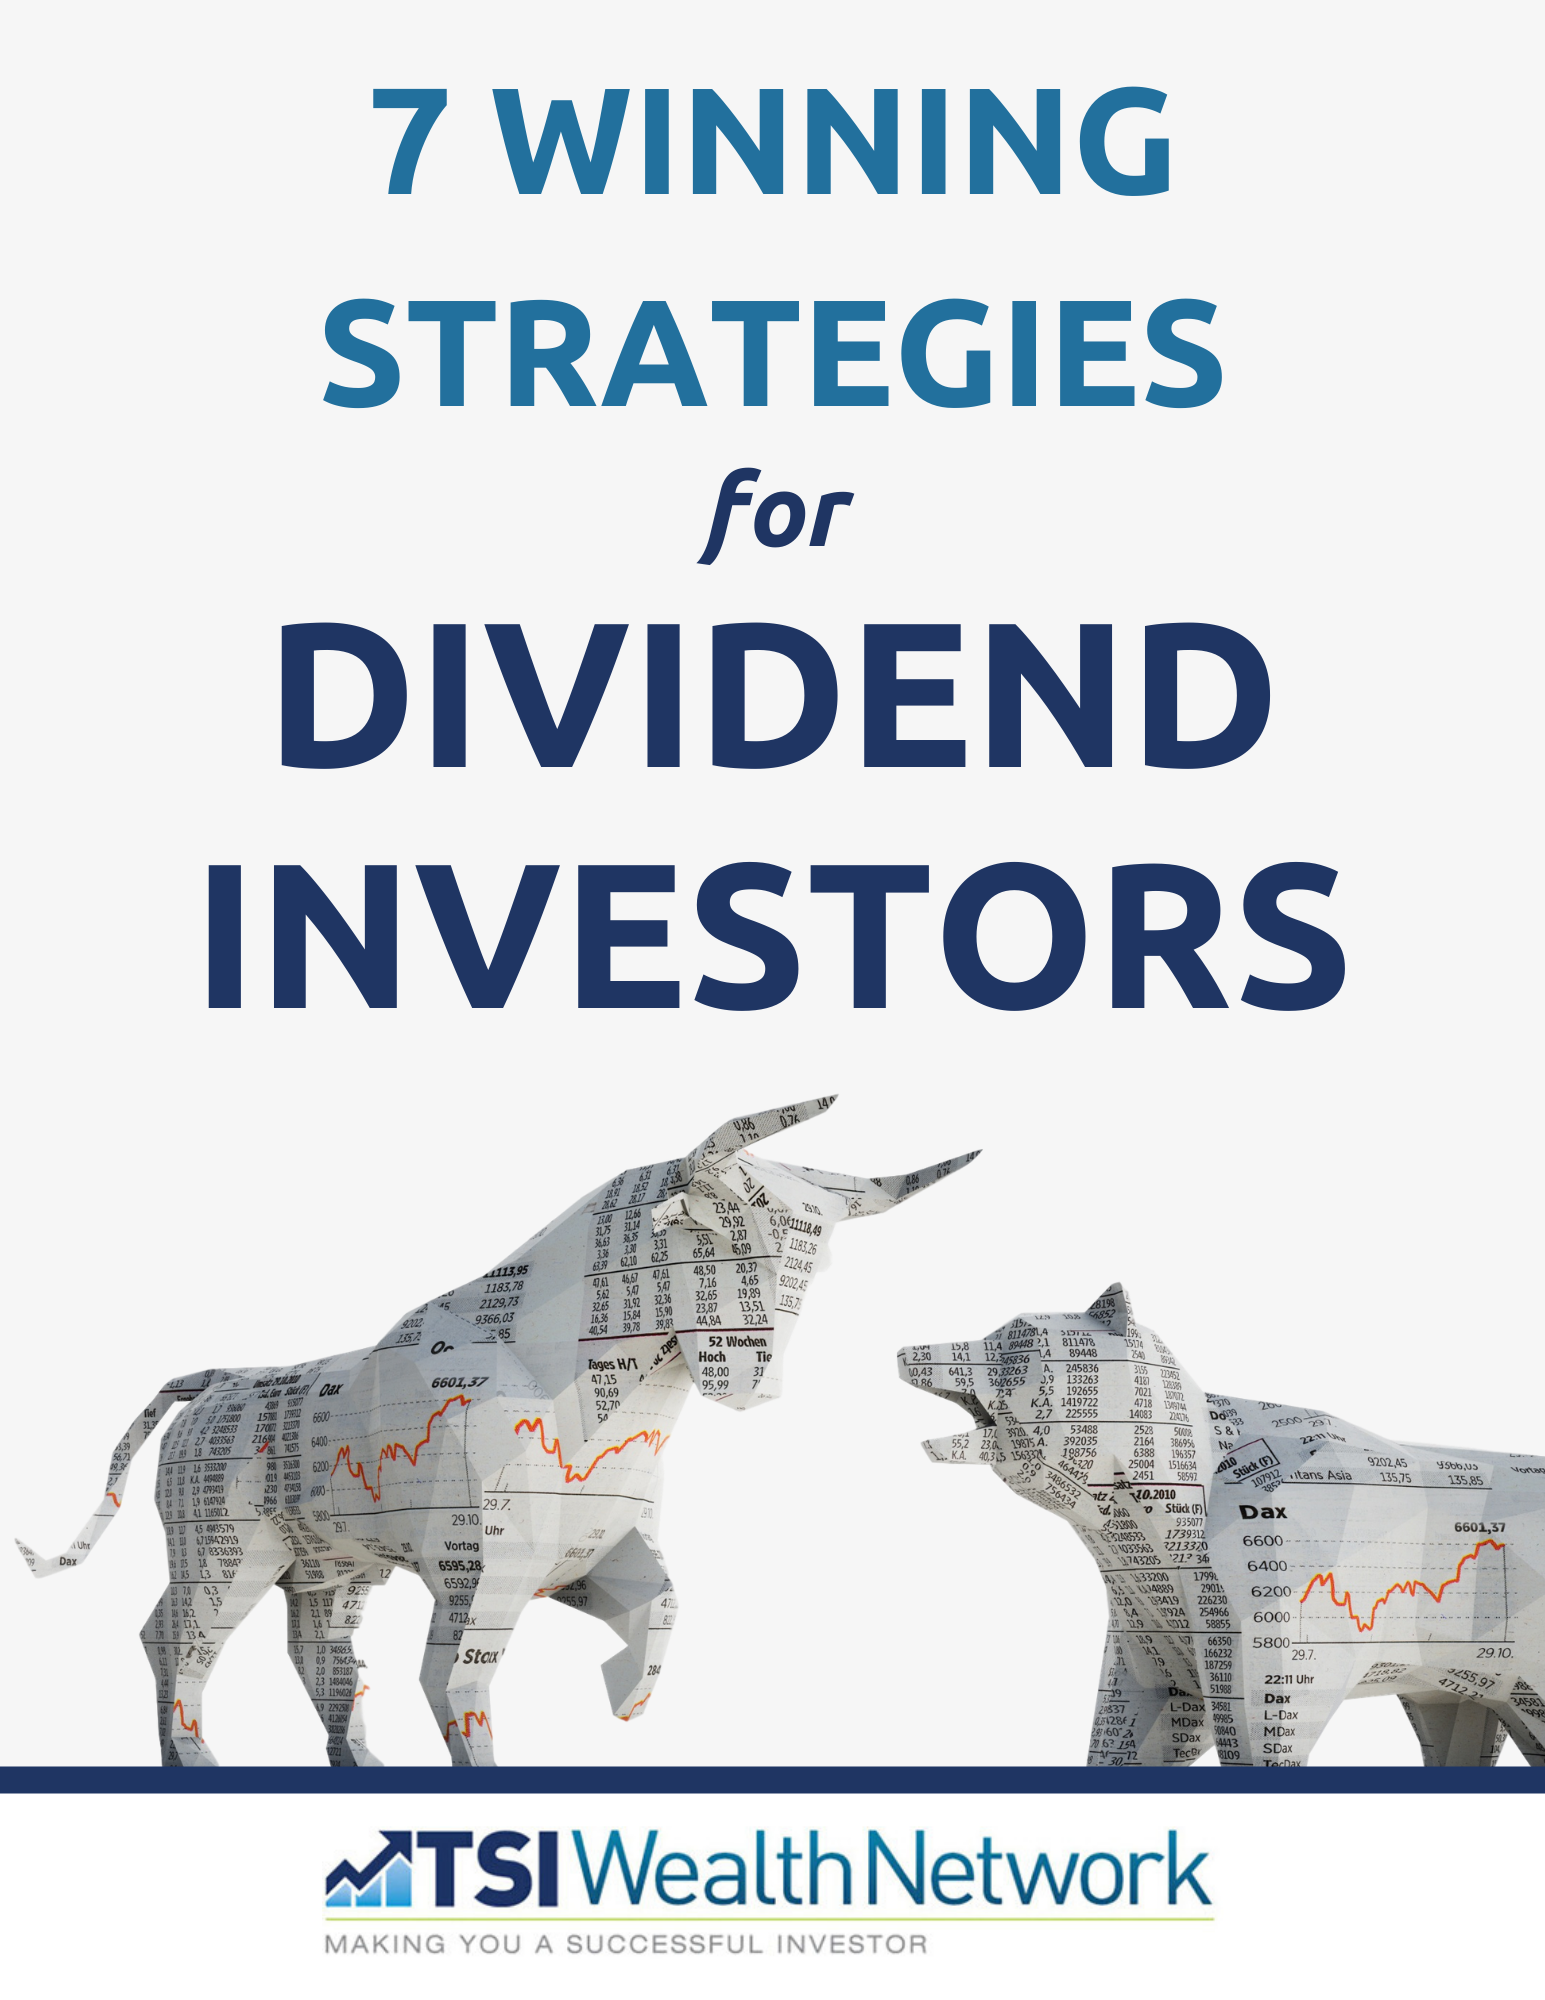 7 Winning Strategies for Dividend Investors